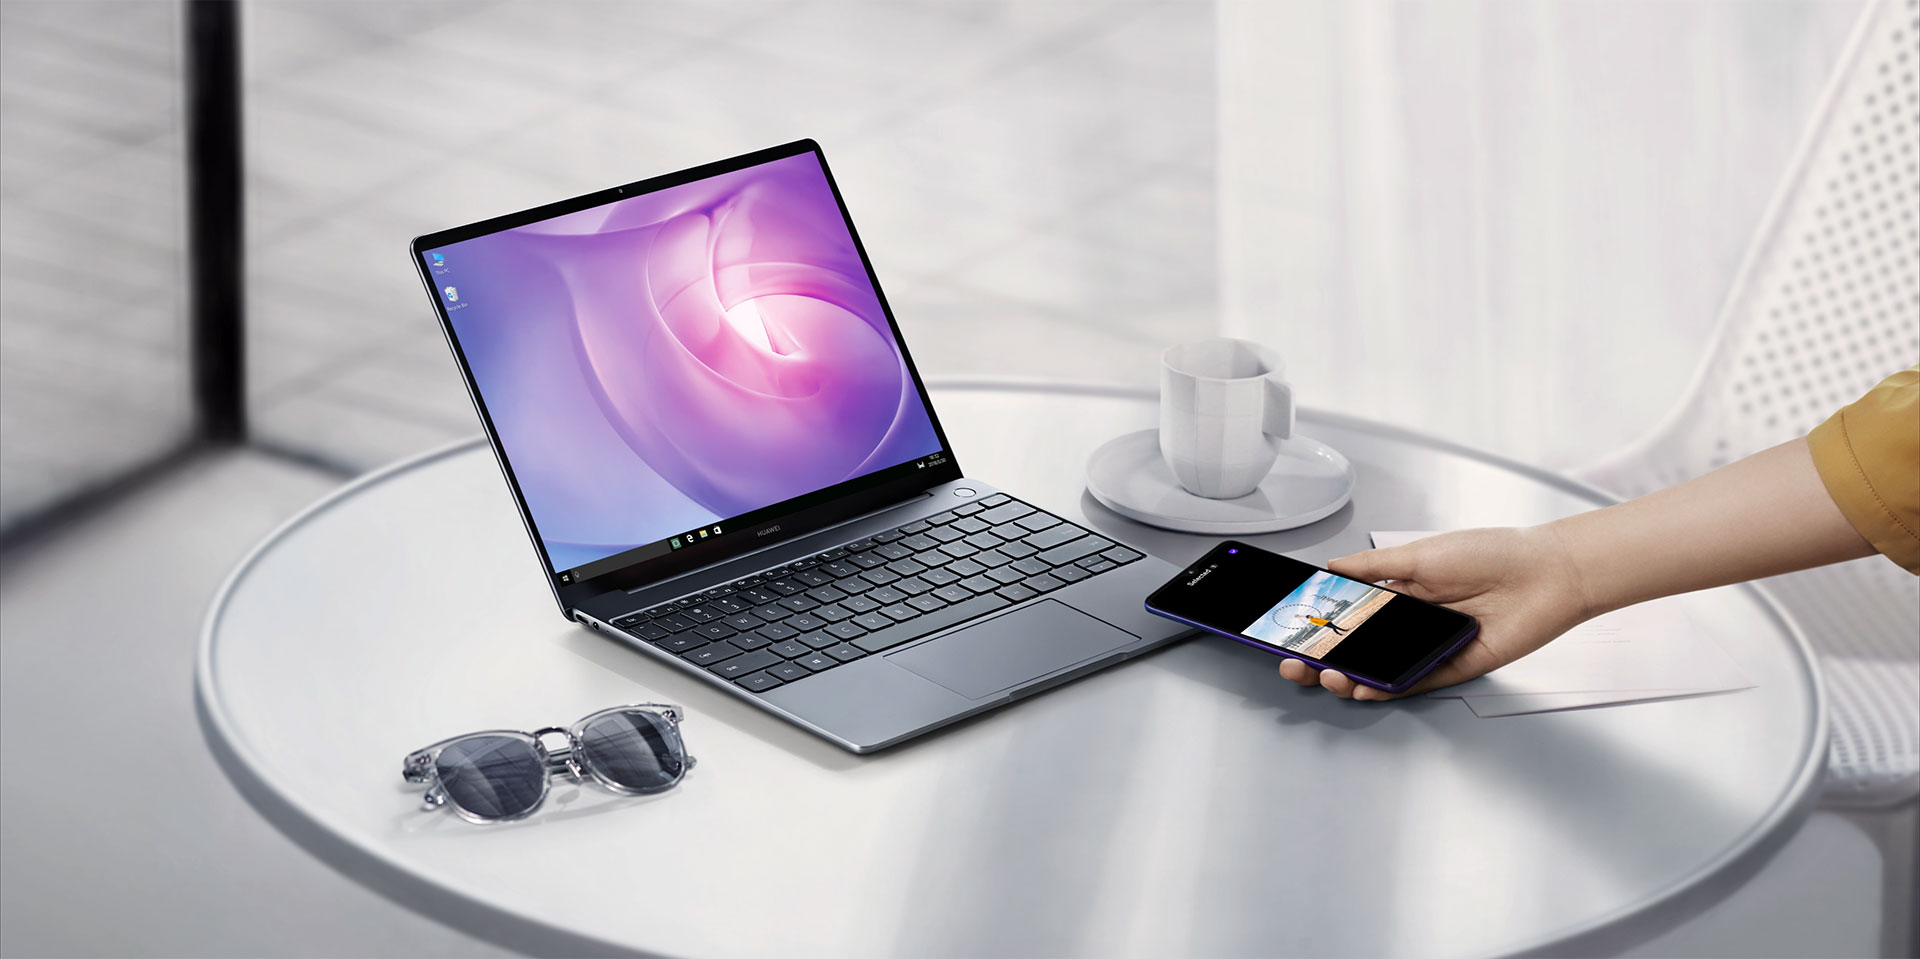 Huawei MateBook 13 makes it easy to share files with Android